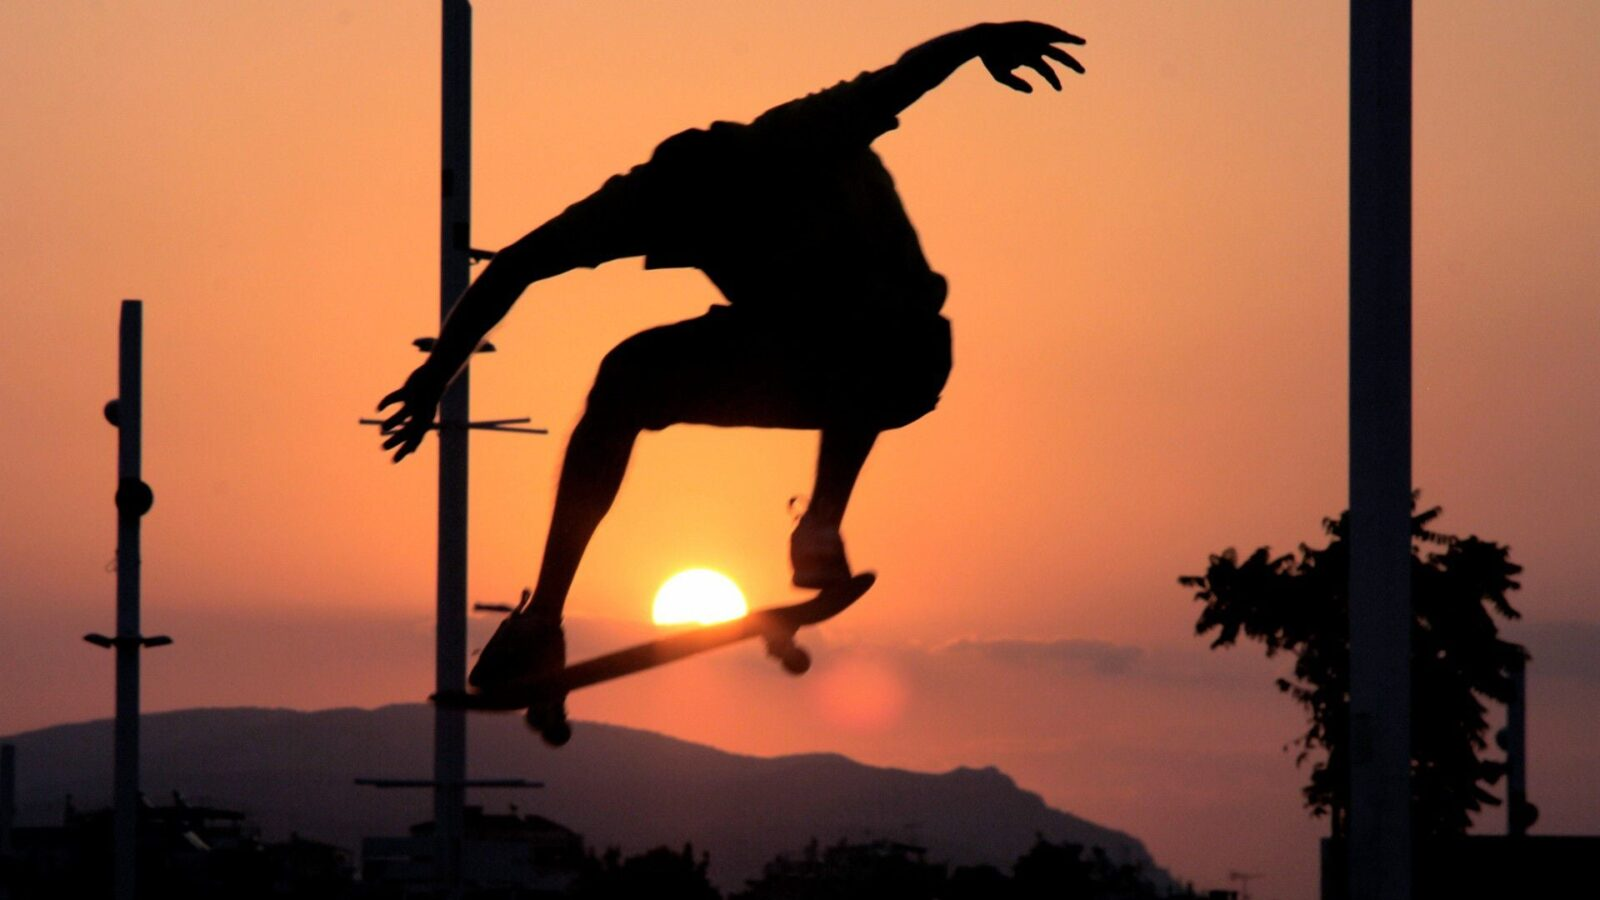 Skateboard Skateboard 39 43 Skateboarding Wallpapers Hd Free Download